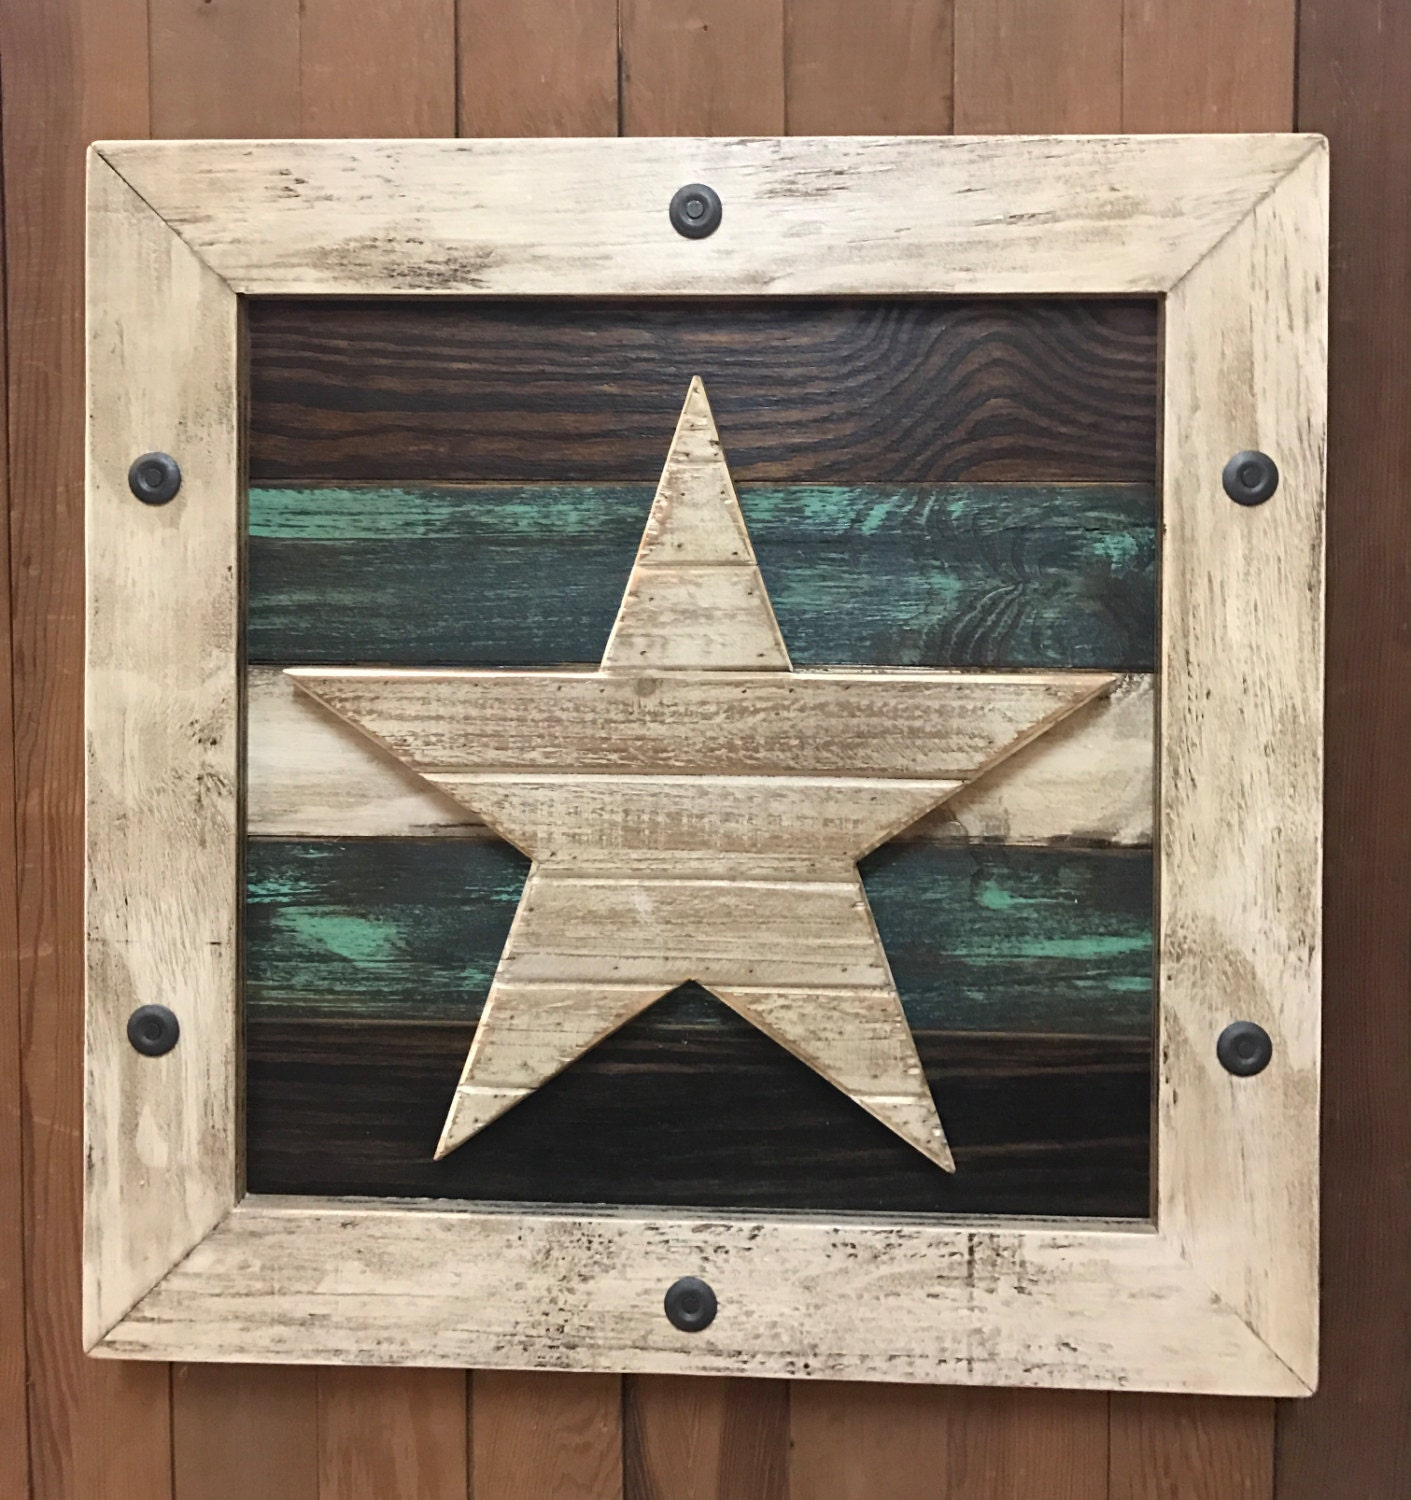 STAR Barn Wood WALL ART Framed Rustic Reclaimed Pallet